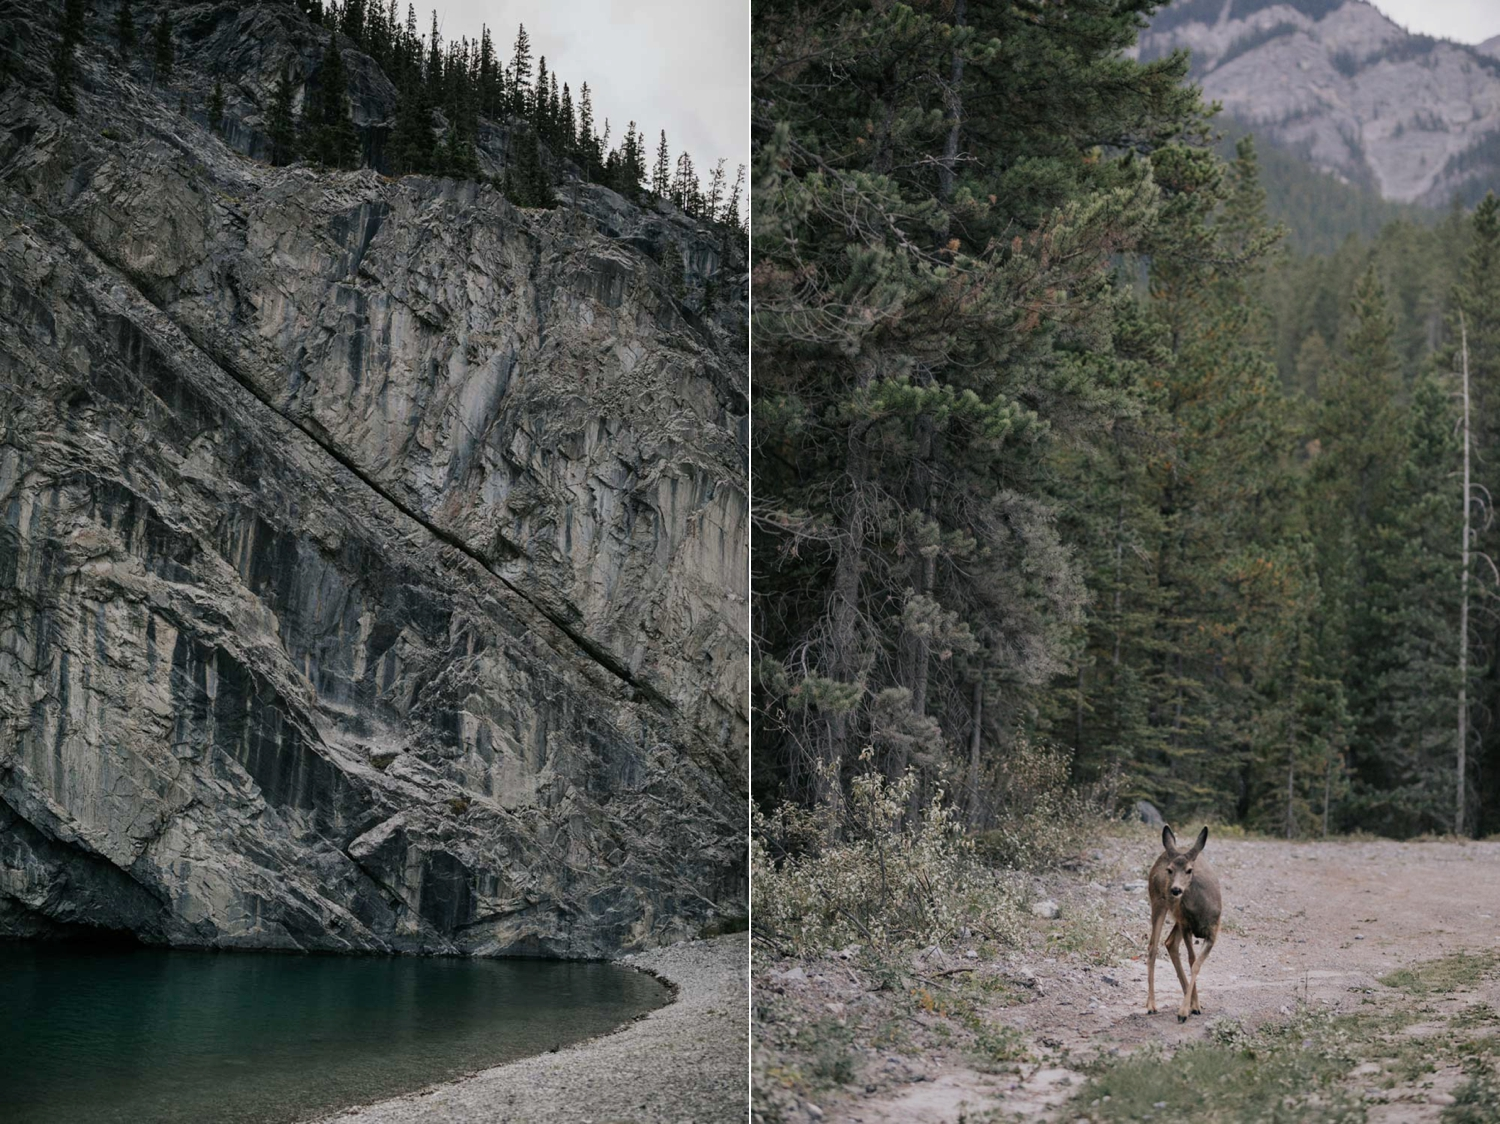 Epic Turquoise Lake and River Rock Face In Alberta Forest And Deer On Road